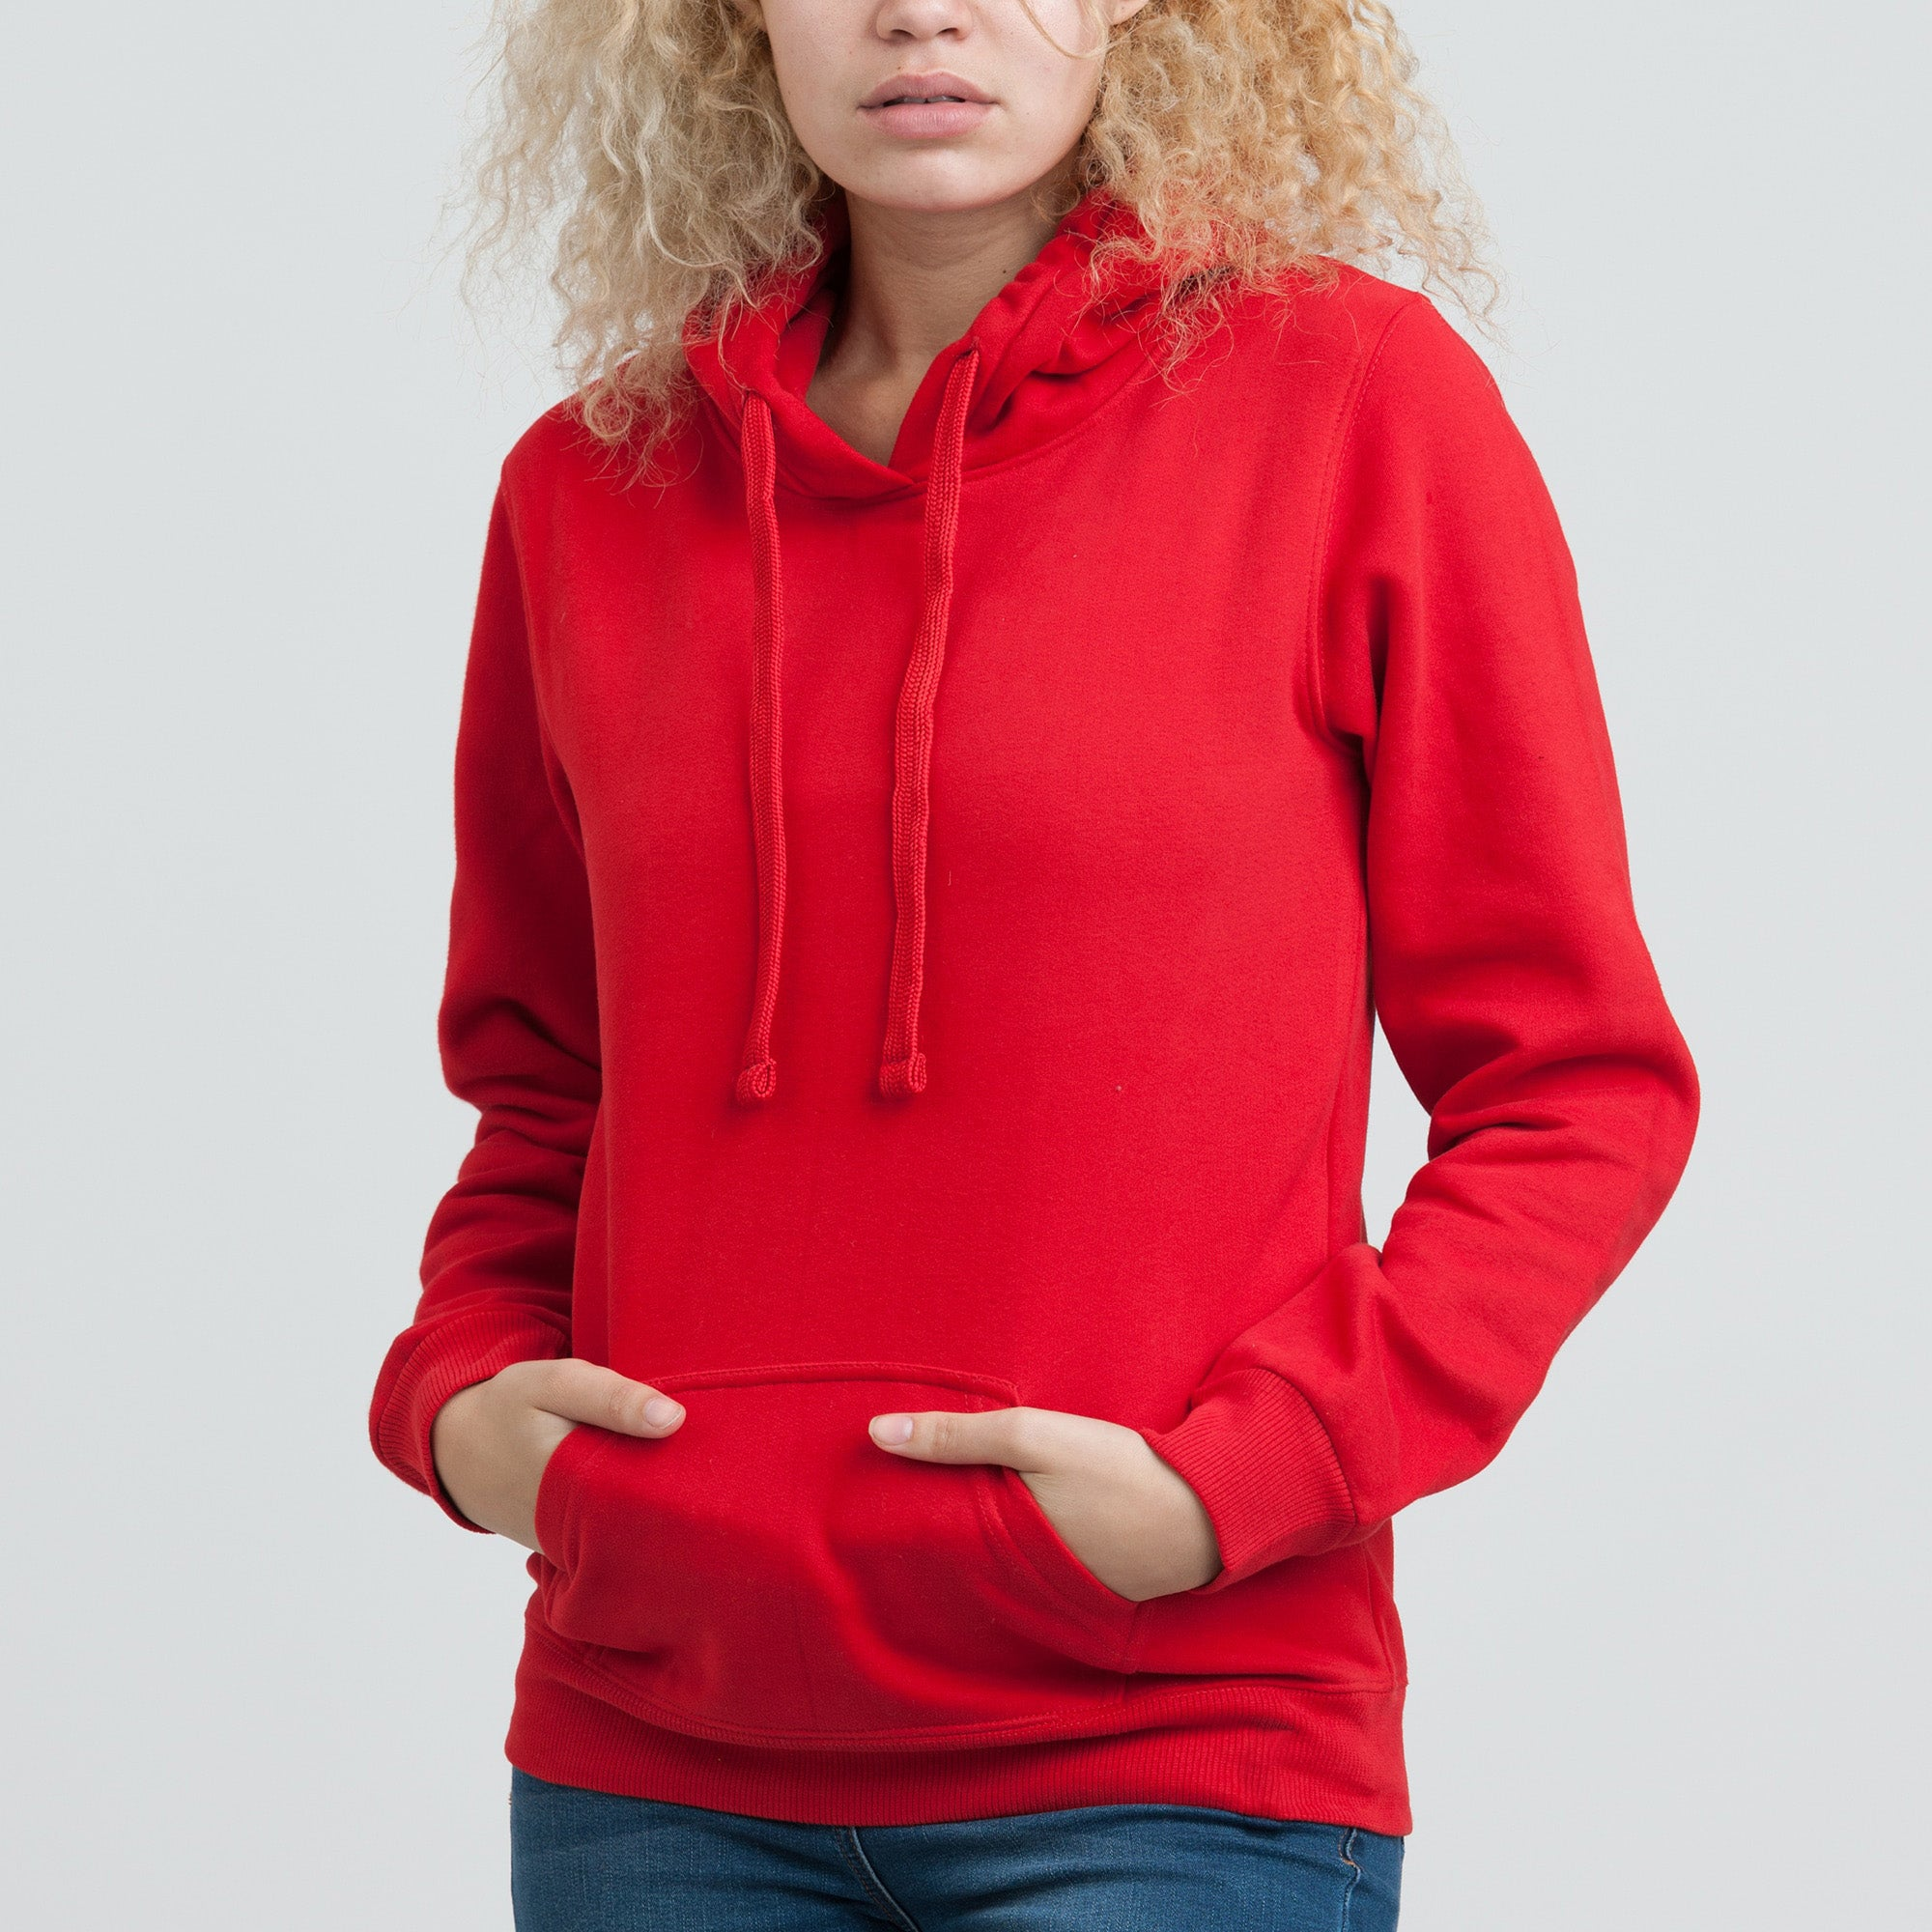 CHEAP American Freshman Ladies Soft Red Hoodie 28509921079 – Clothing Accessories